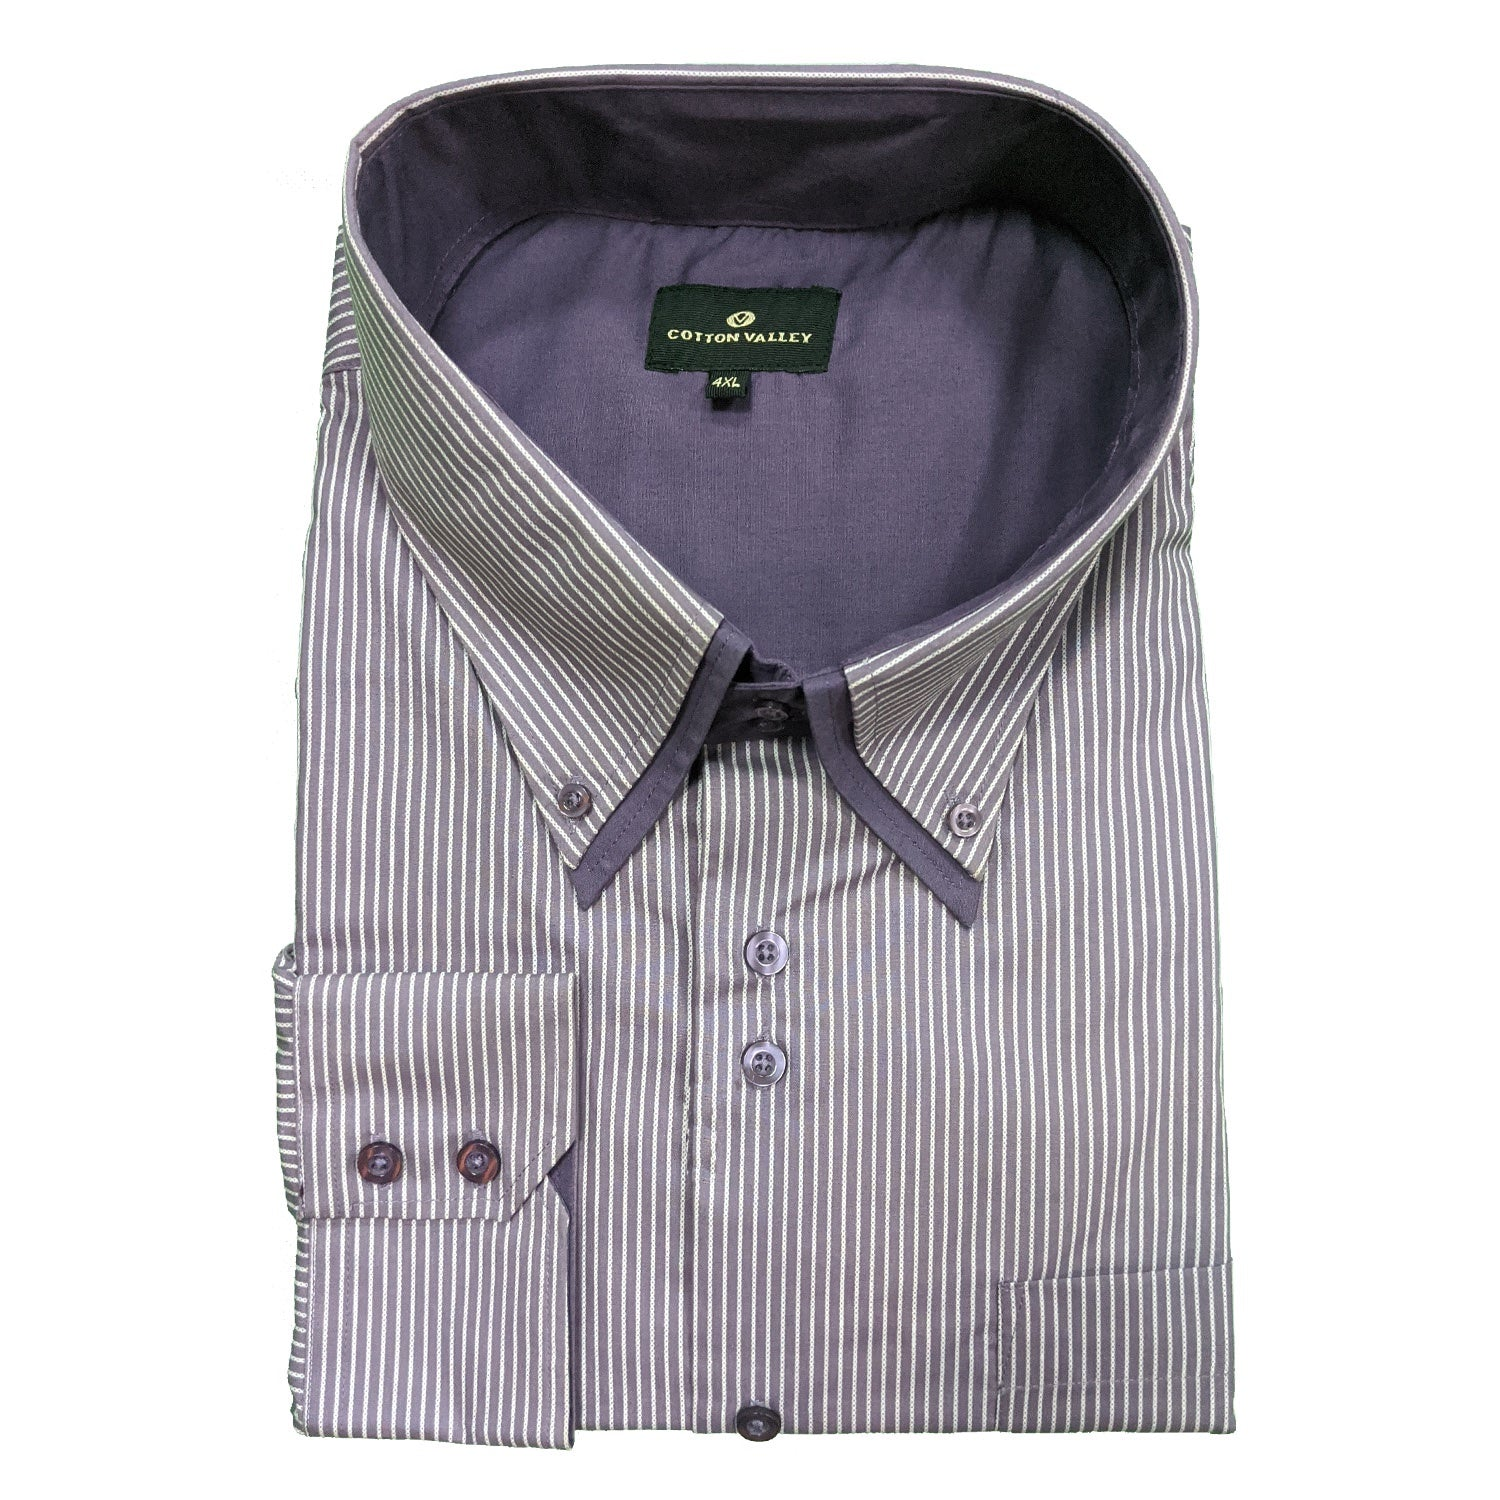 Cotton Valley L/S Stripe Shirt - 15544 - Purple 1